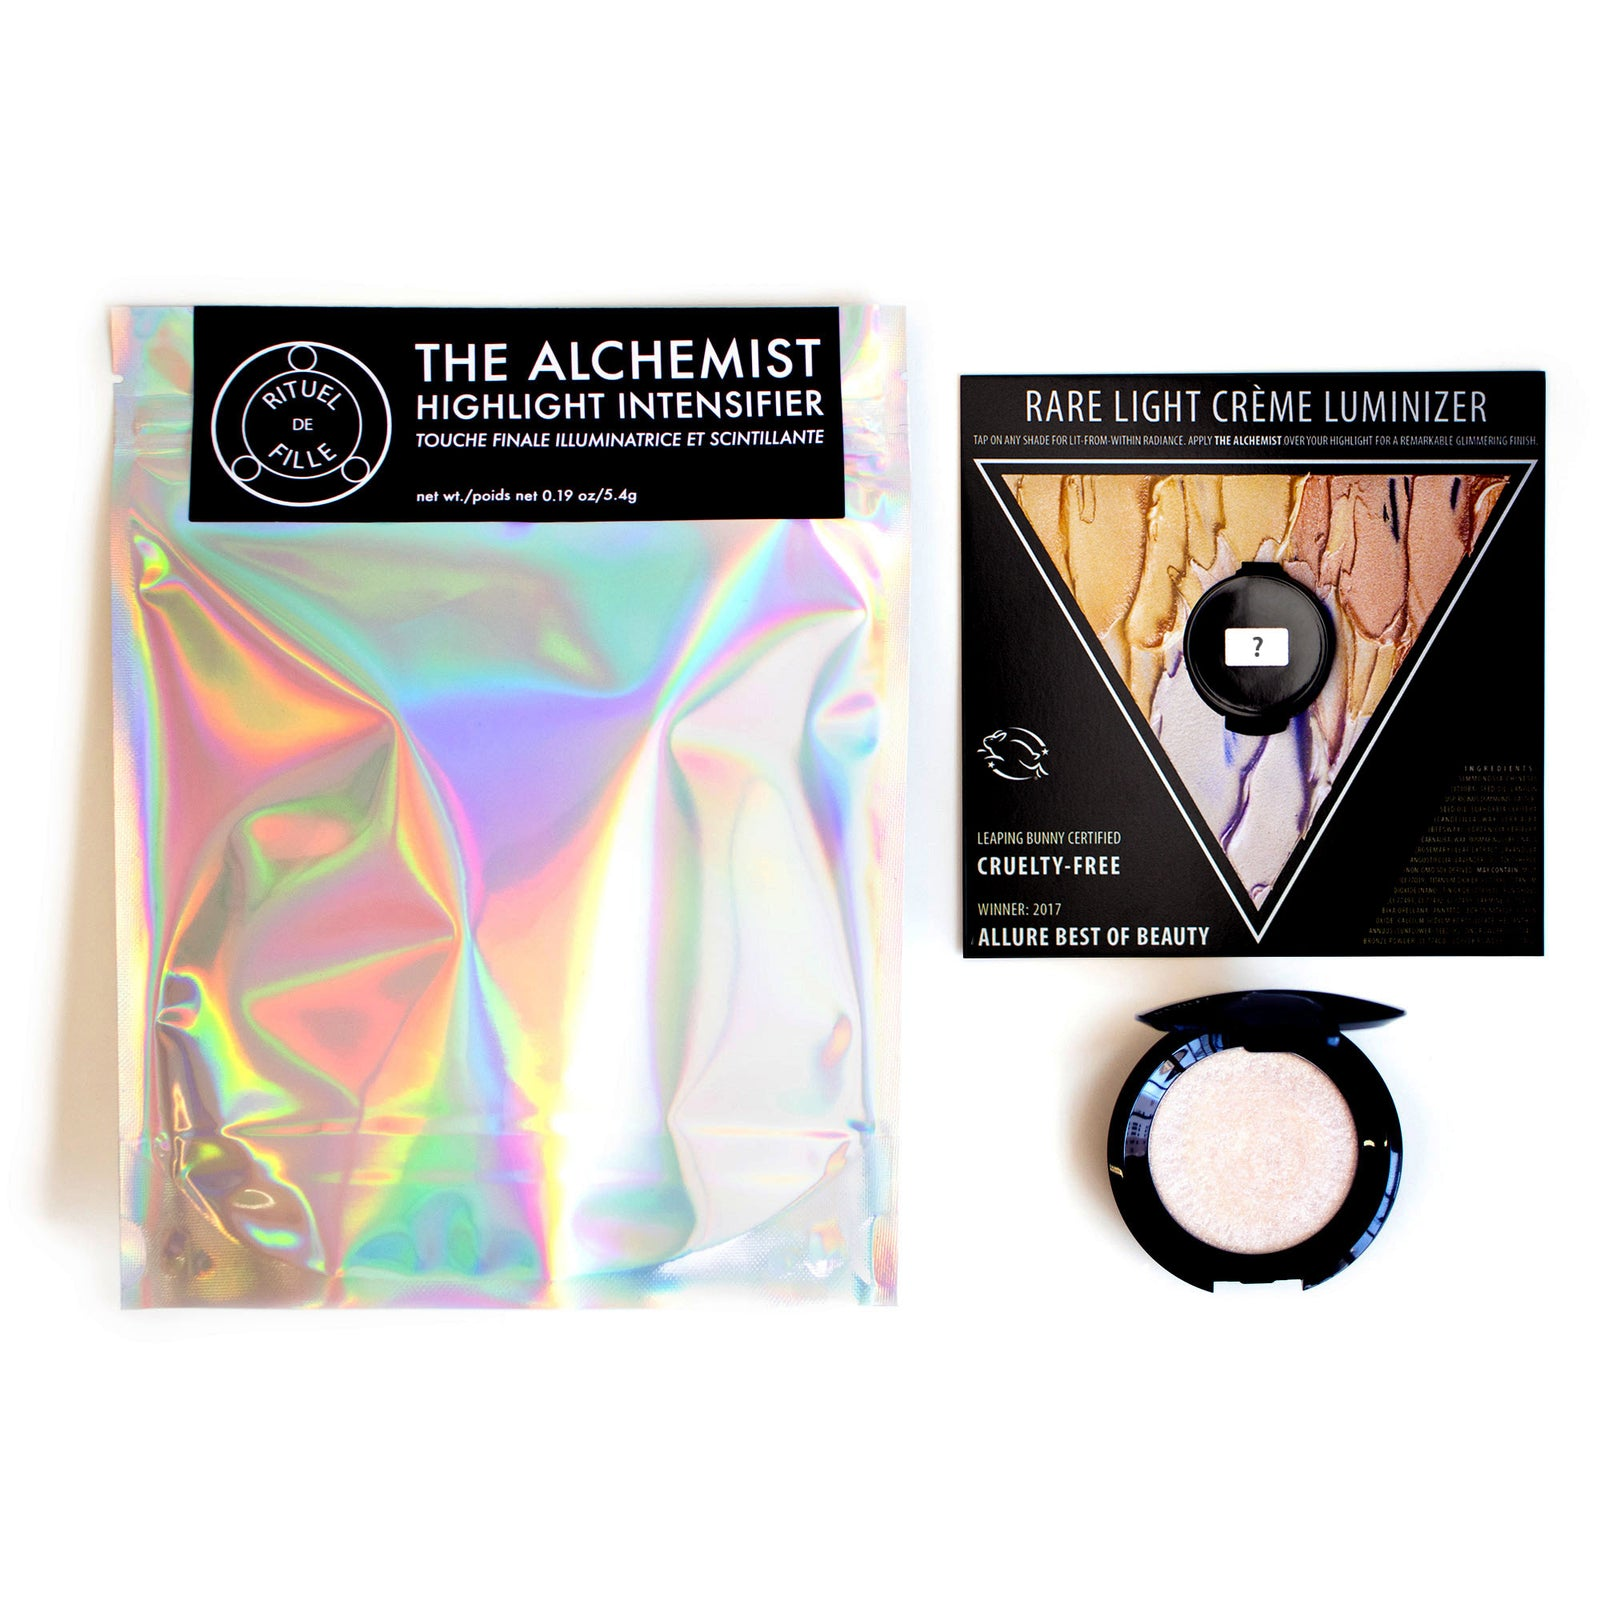 Alchemist | The Alchemist Highlight Intensifier - Rituel de Fille